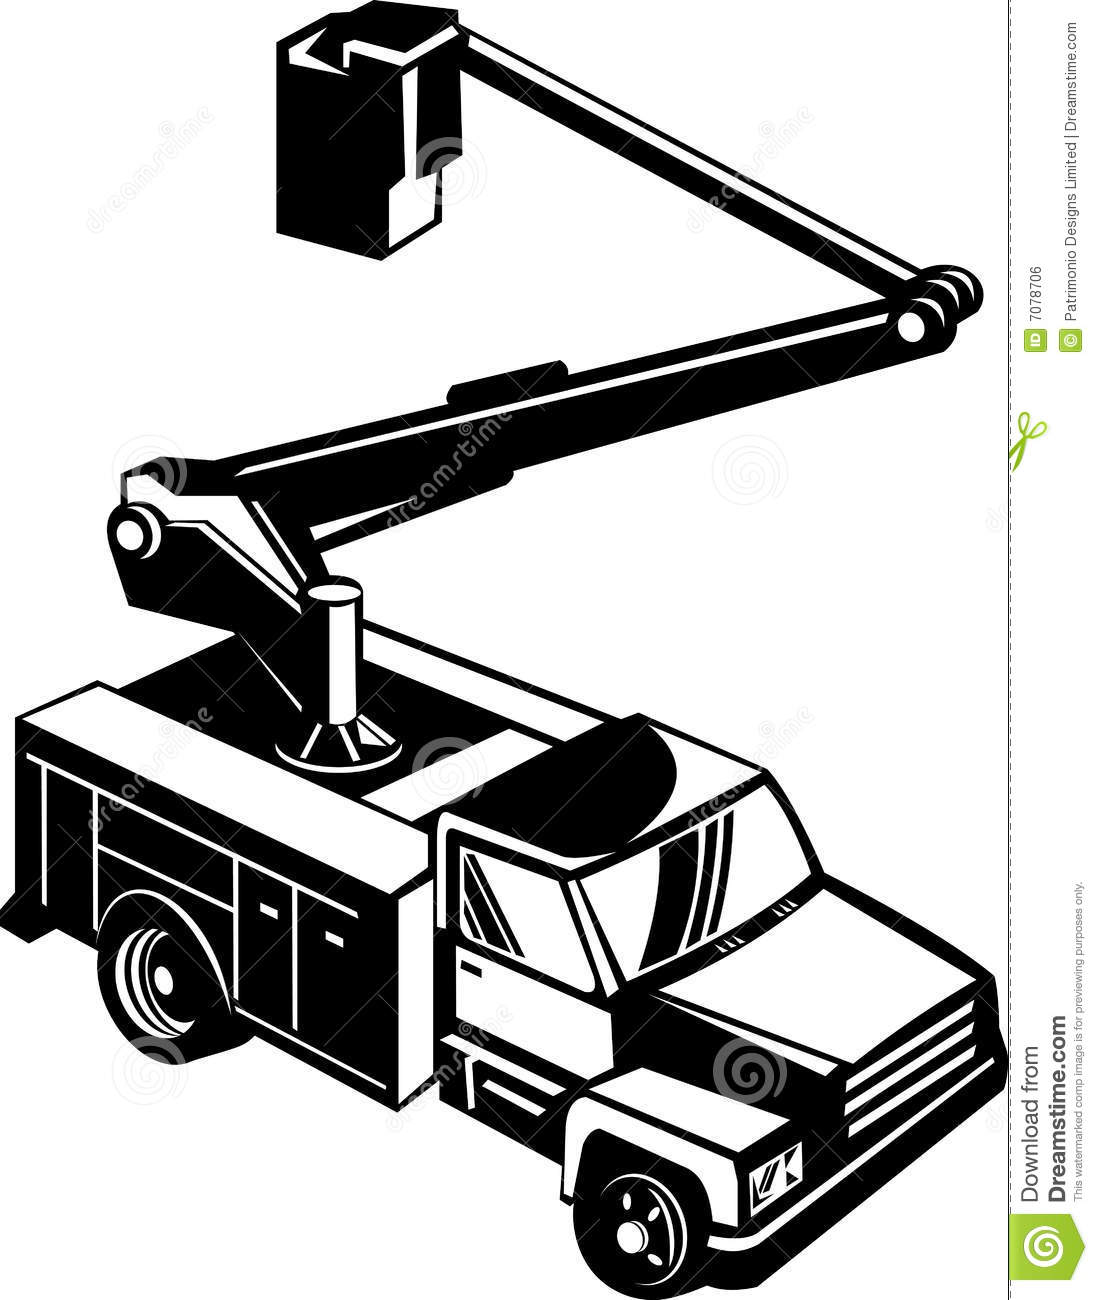 Bucket Truck Cherry Picker Royalty Free Stock Image   Image  7078706